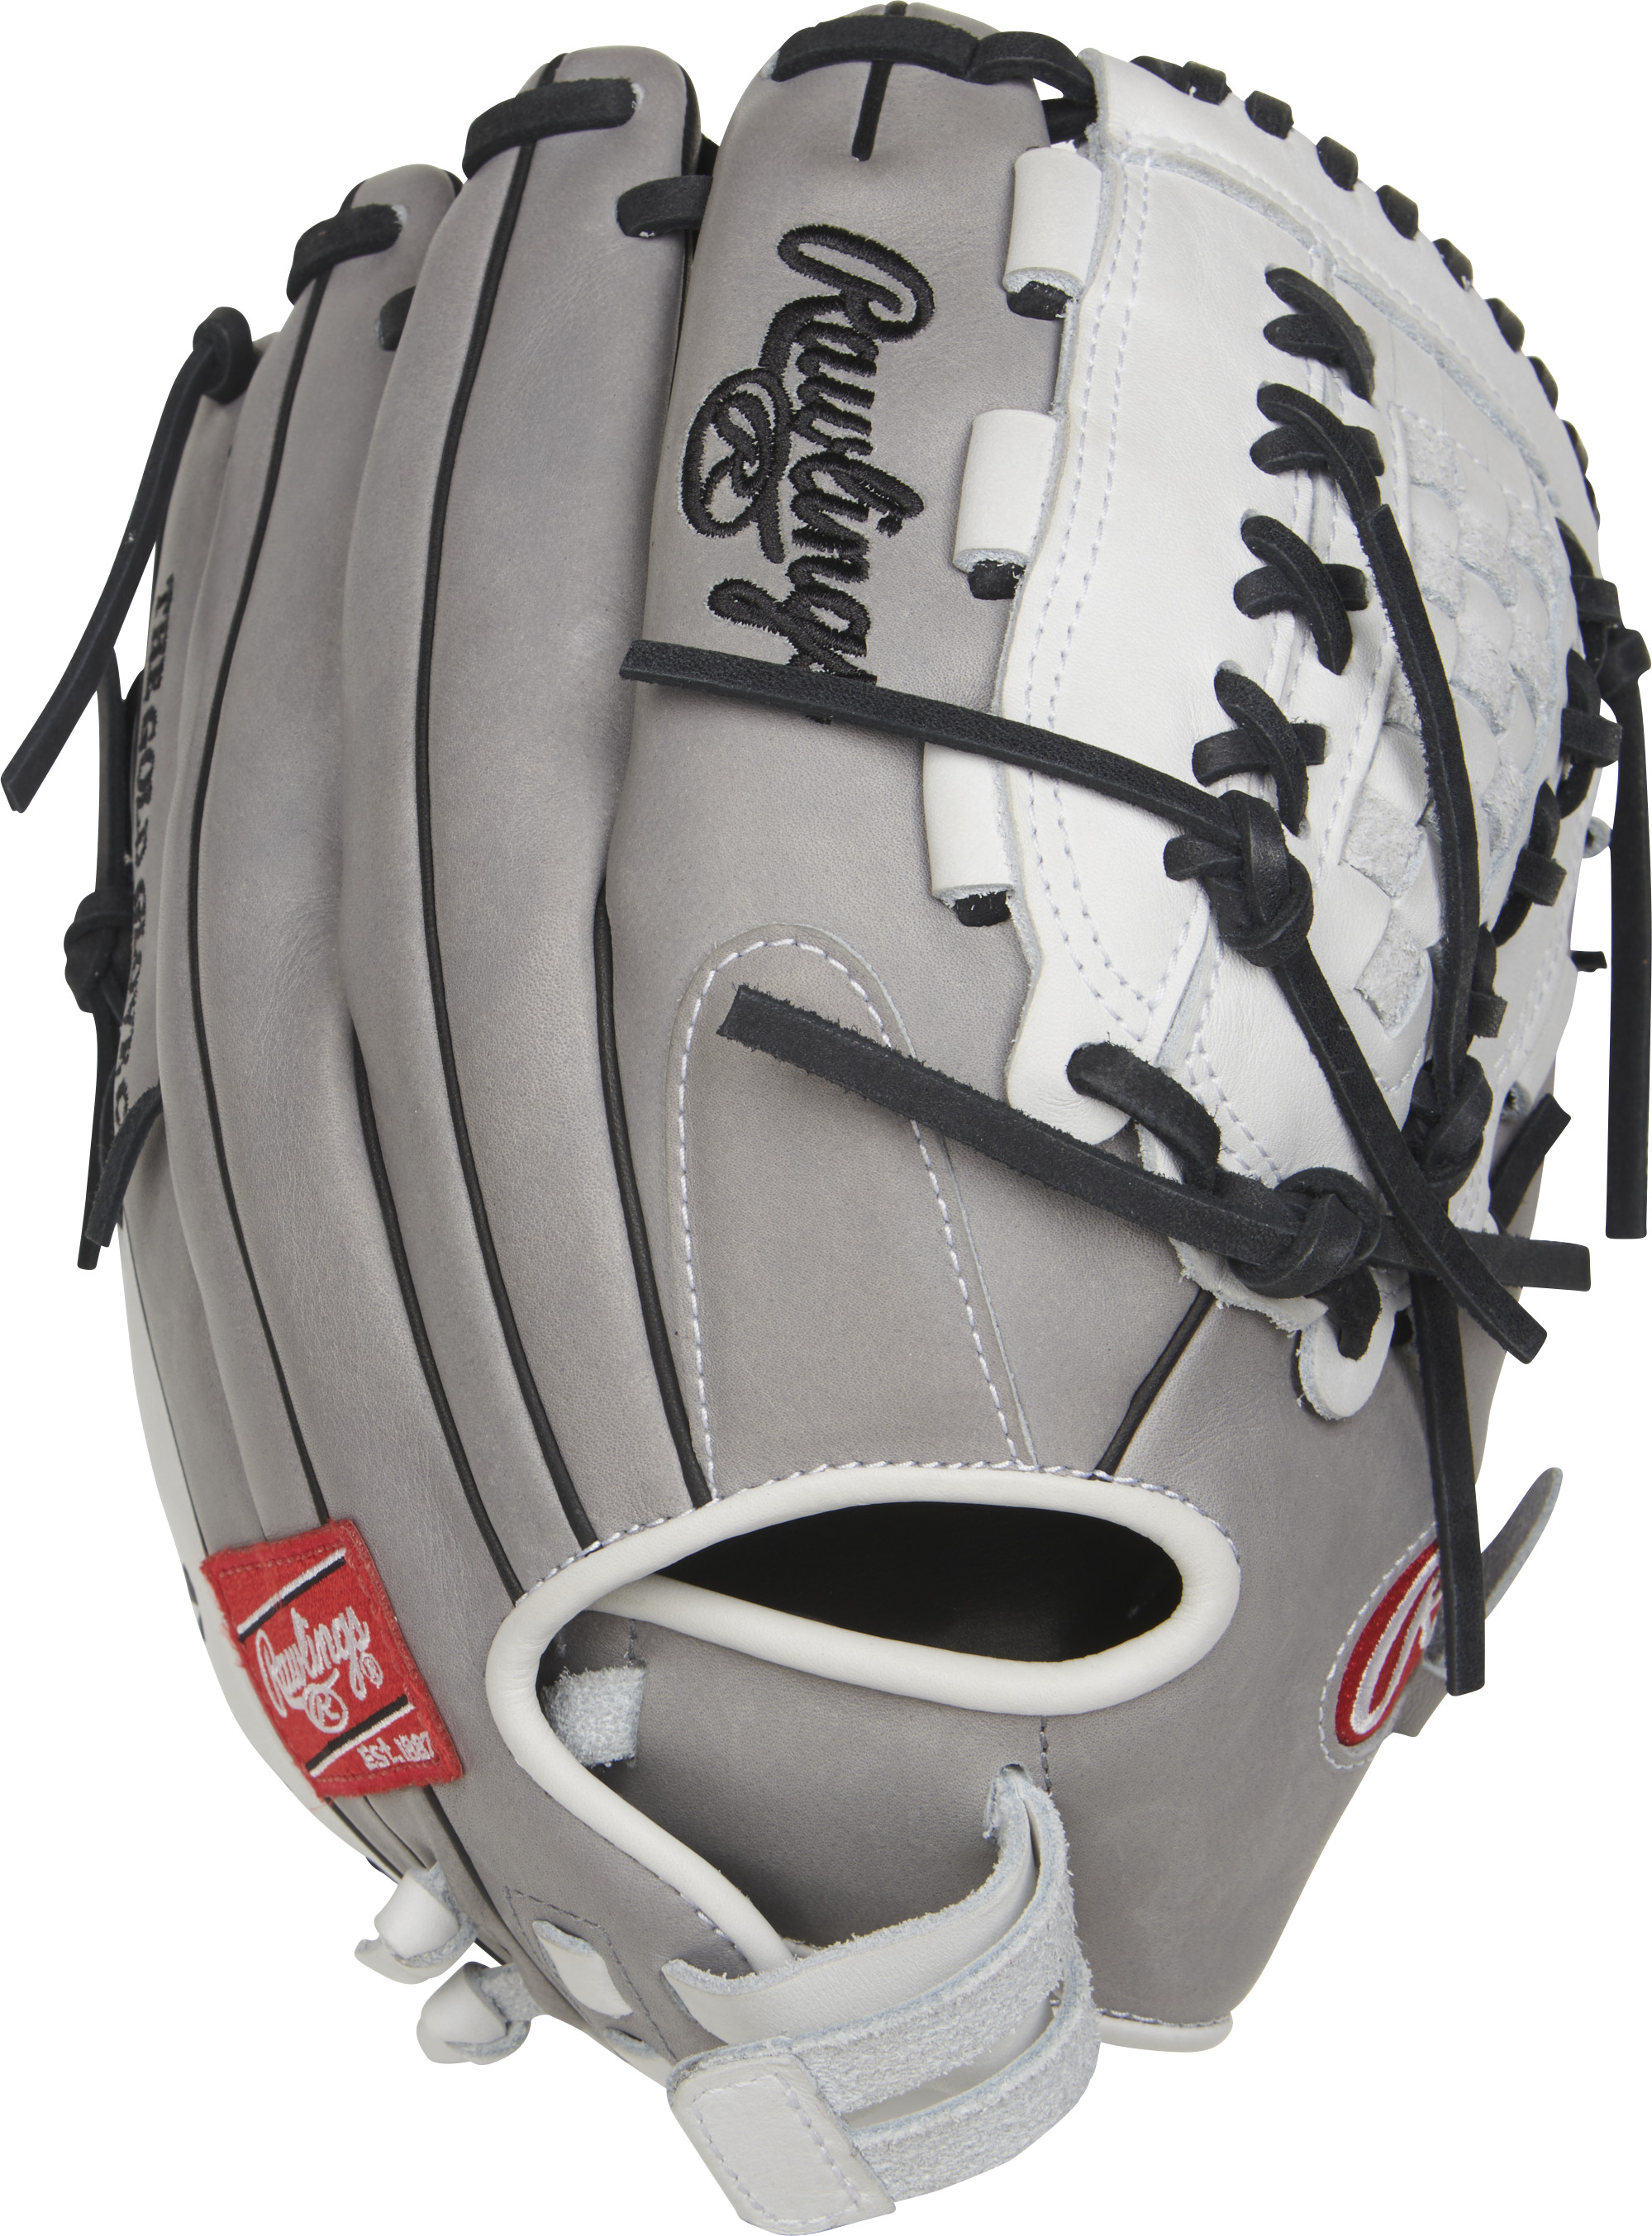 http://www.bestbatdeals.com/images/gloves/rawlings/PRO125SB-18GW-2.jpg